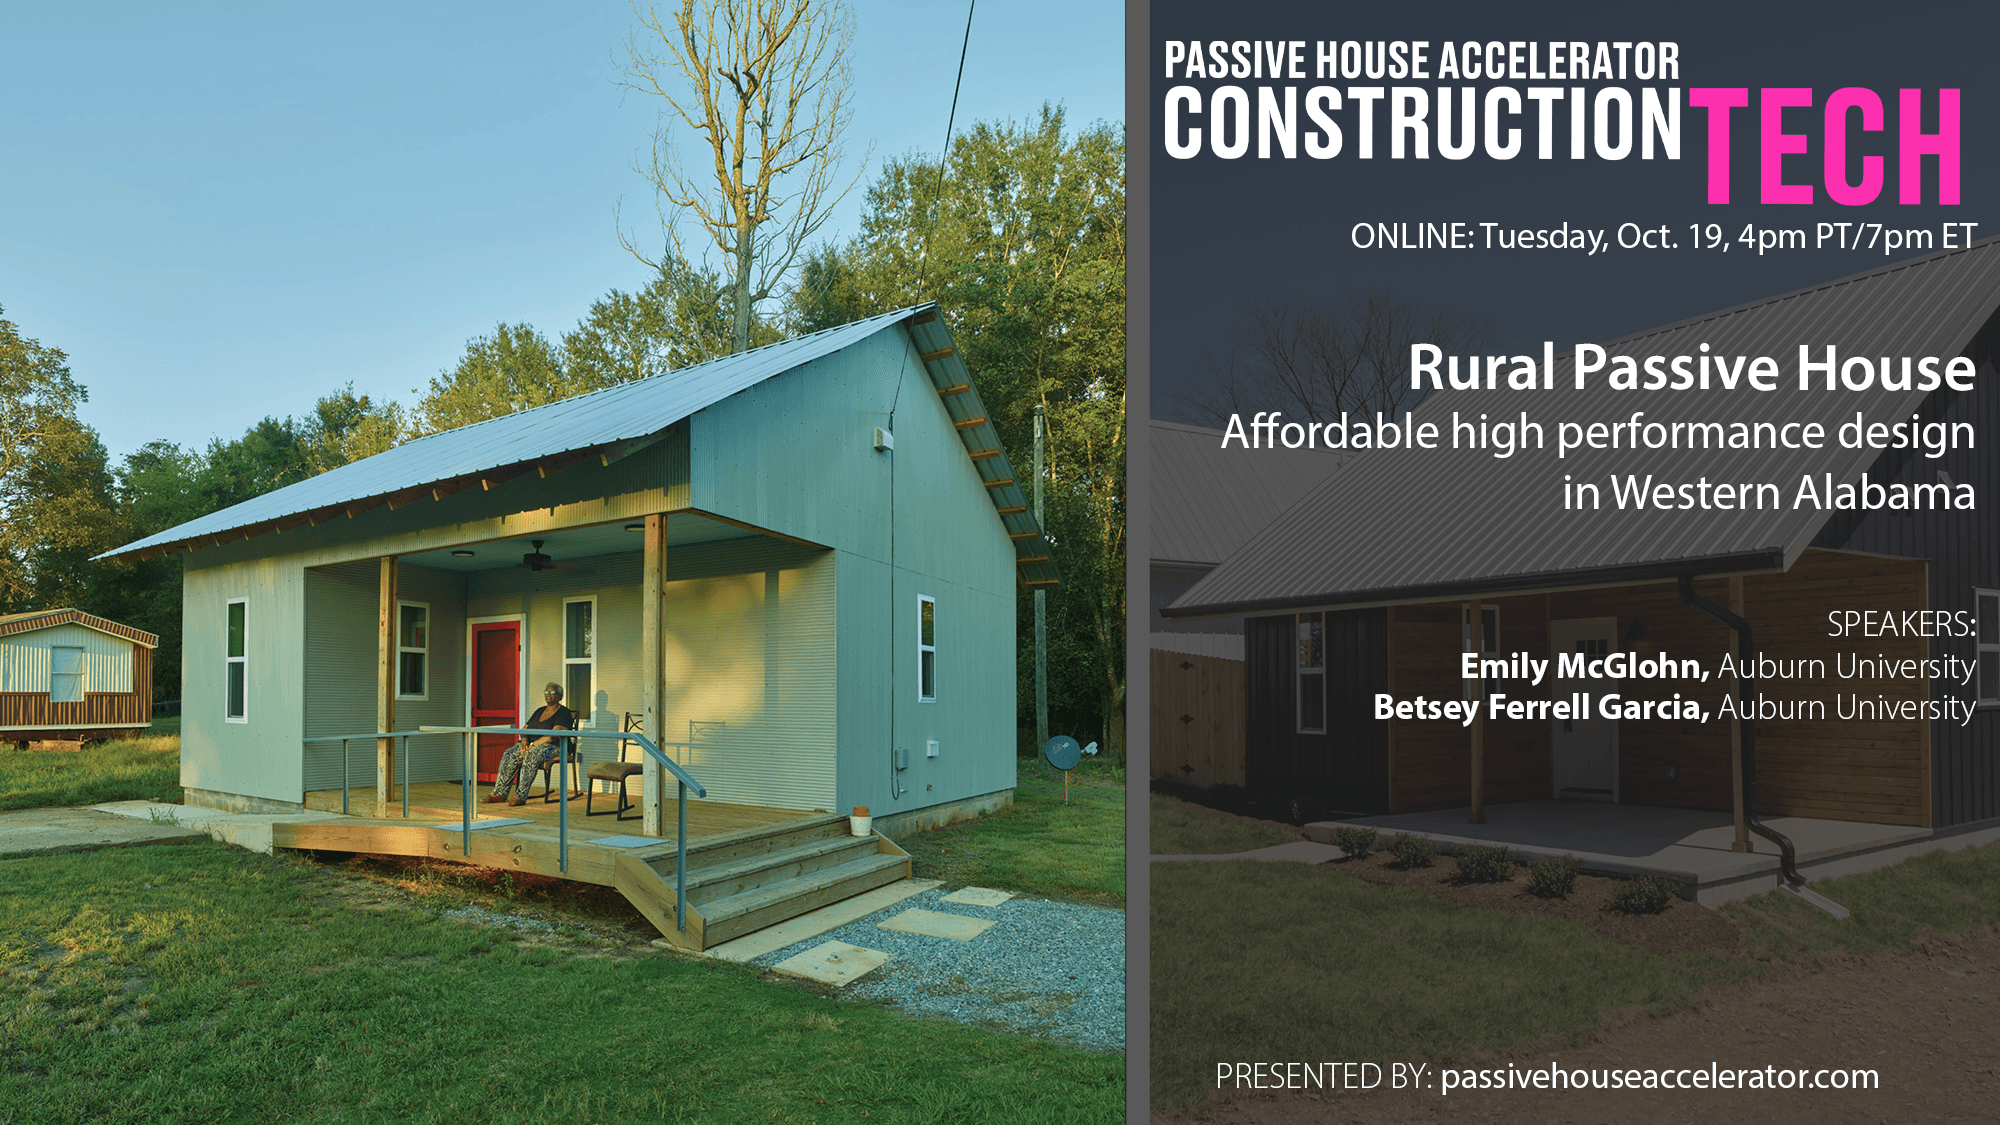 Rural Passive House Initiatives in Western Alabama and the Southeast